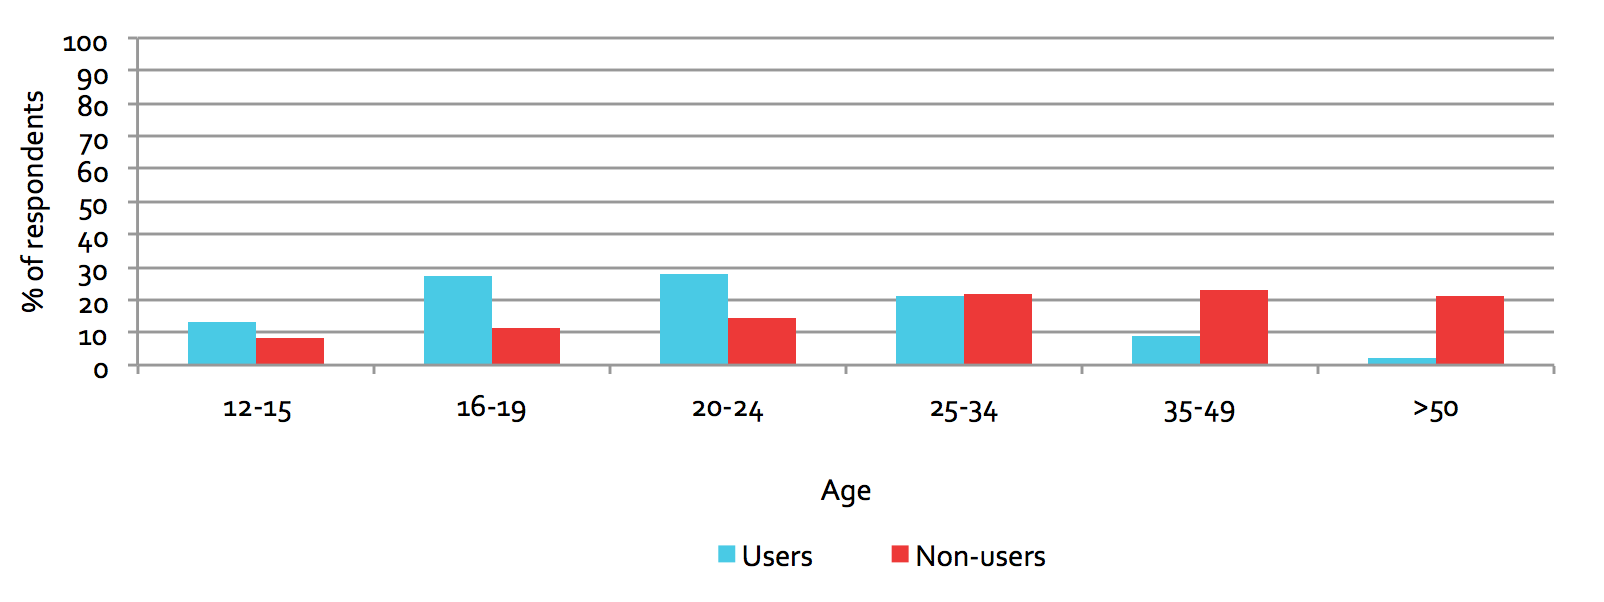 Figure 6.1: Users and non-users, by age group